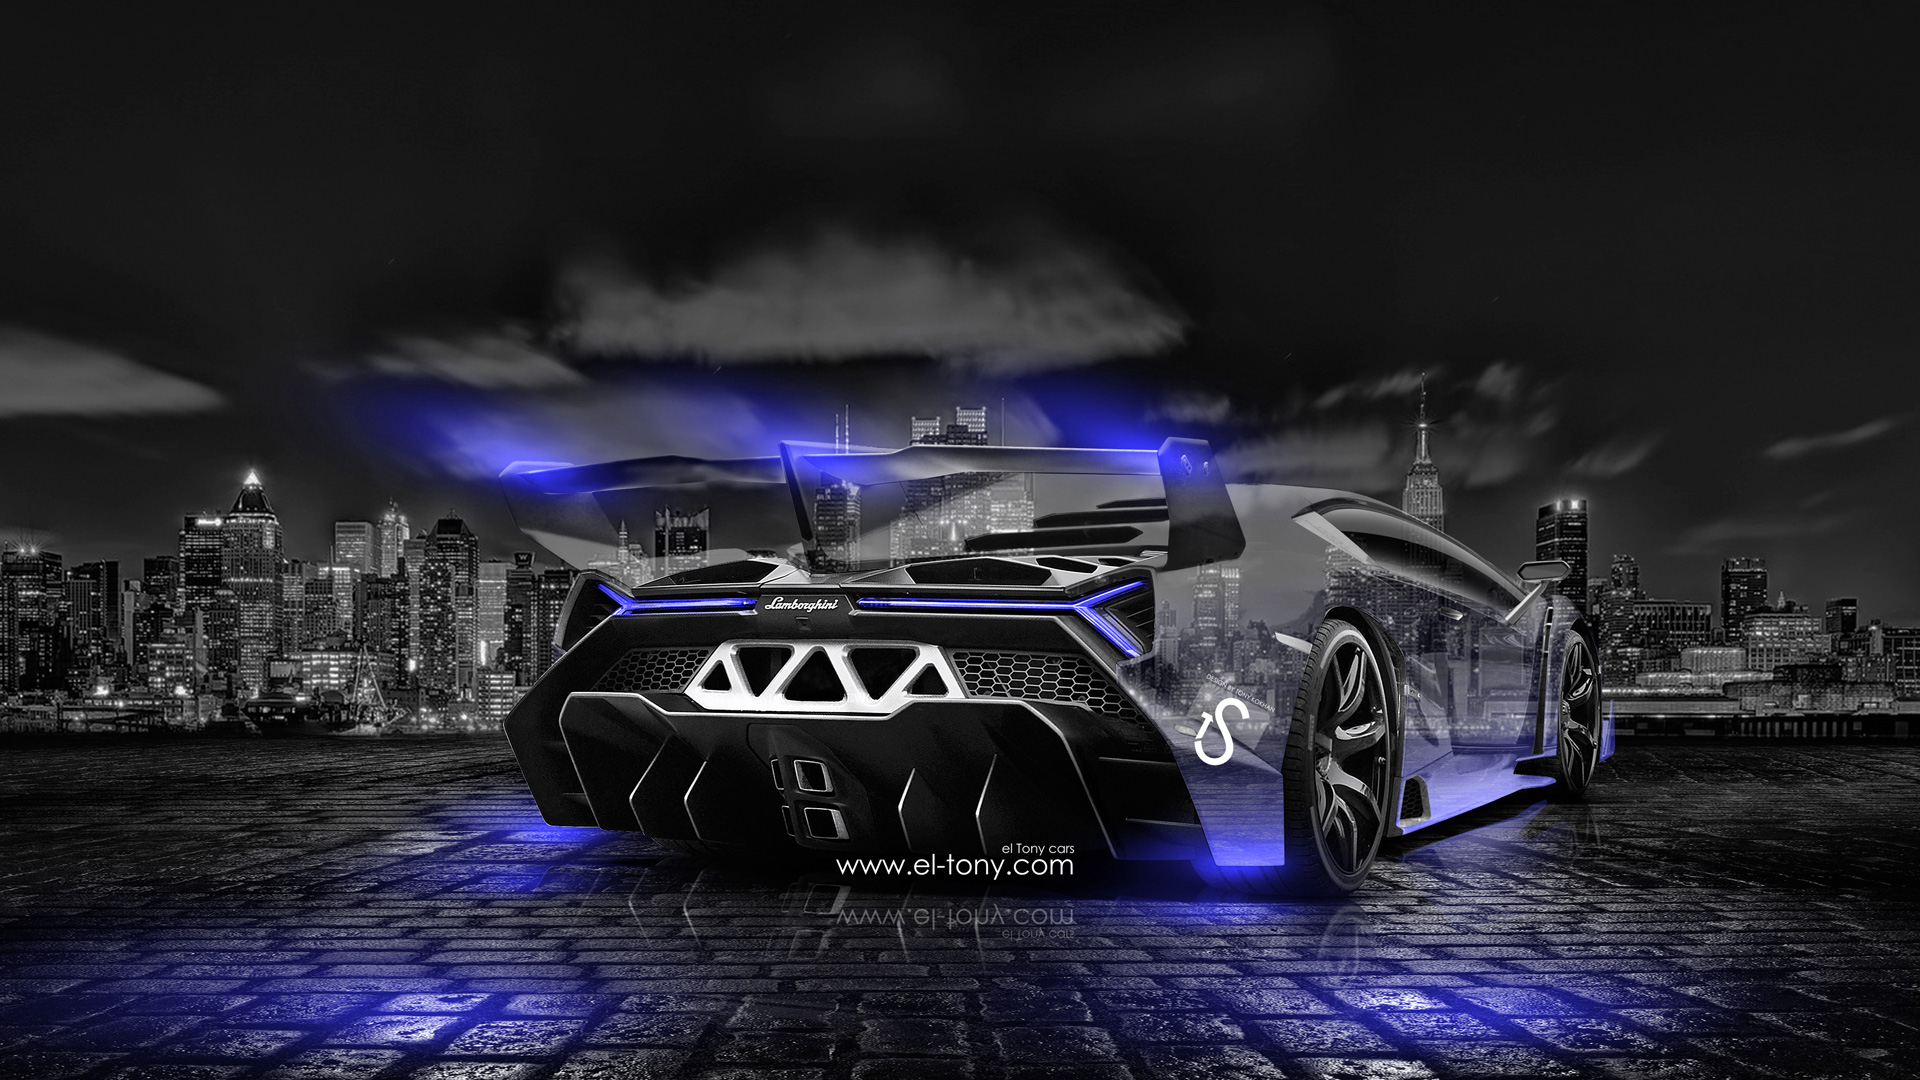 Charmant Lamborghini Veneno Crystal City Car 2014 Blue Neon